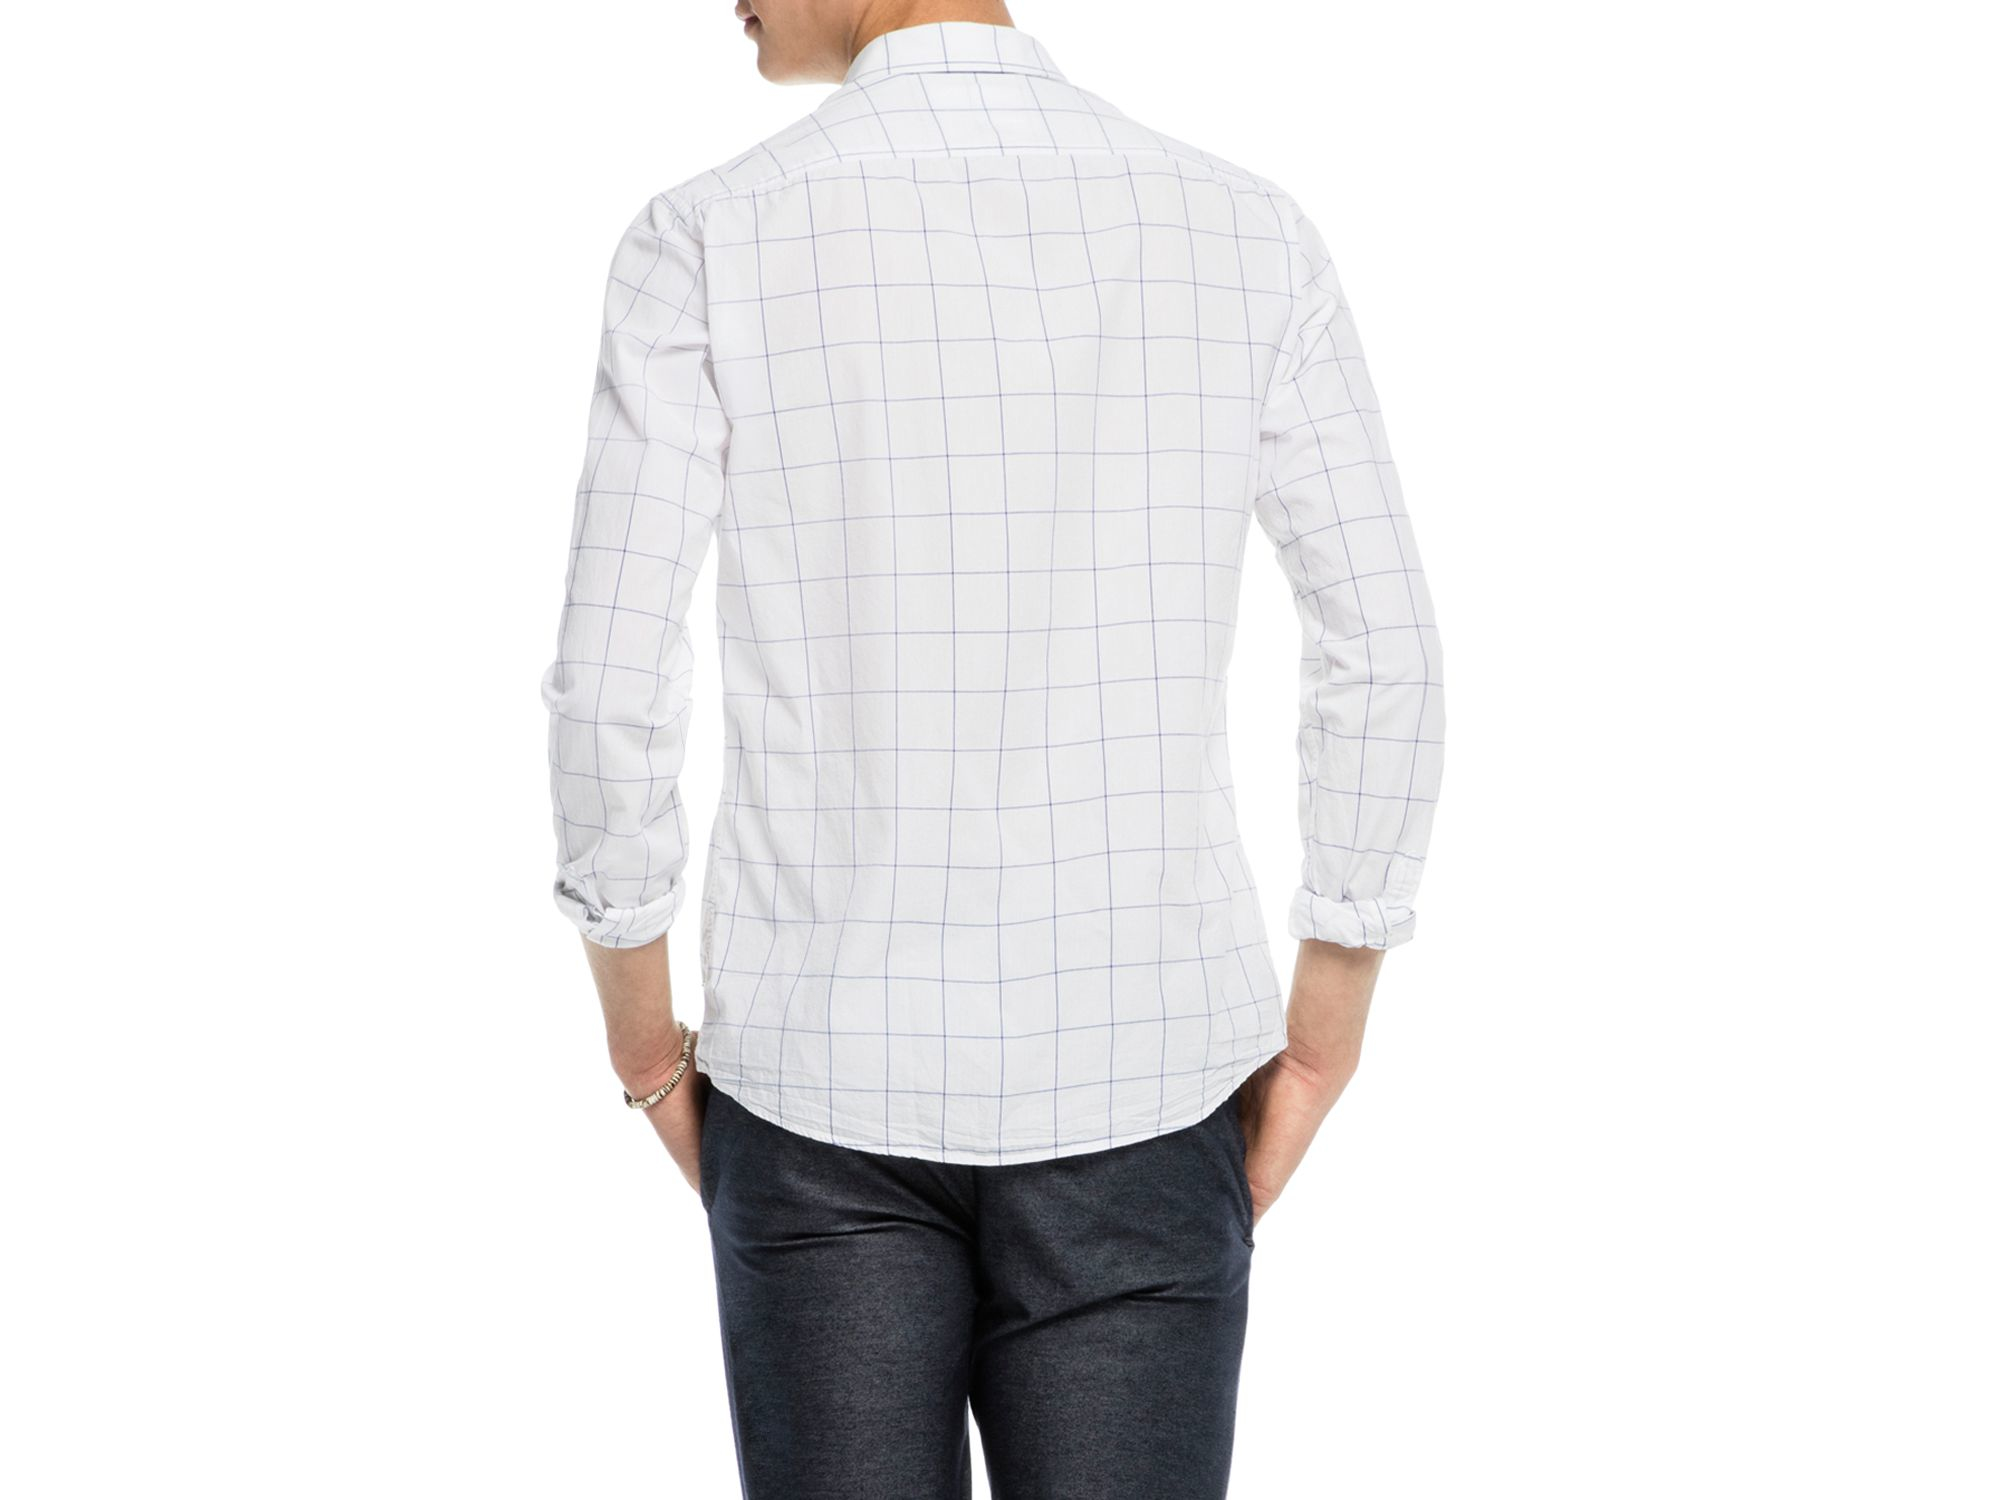 lyst scotch soda windowpane slim fit button down shirt